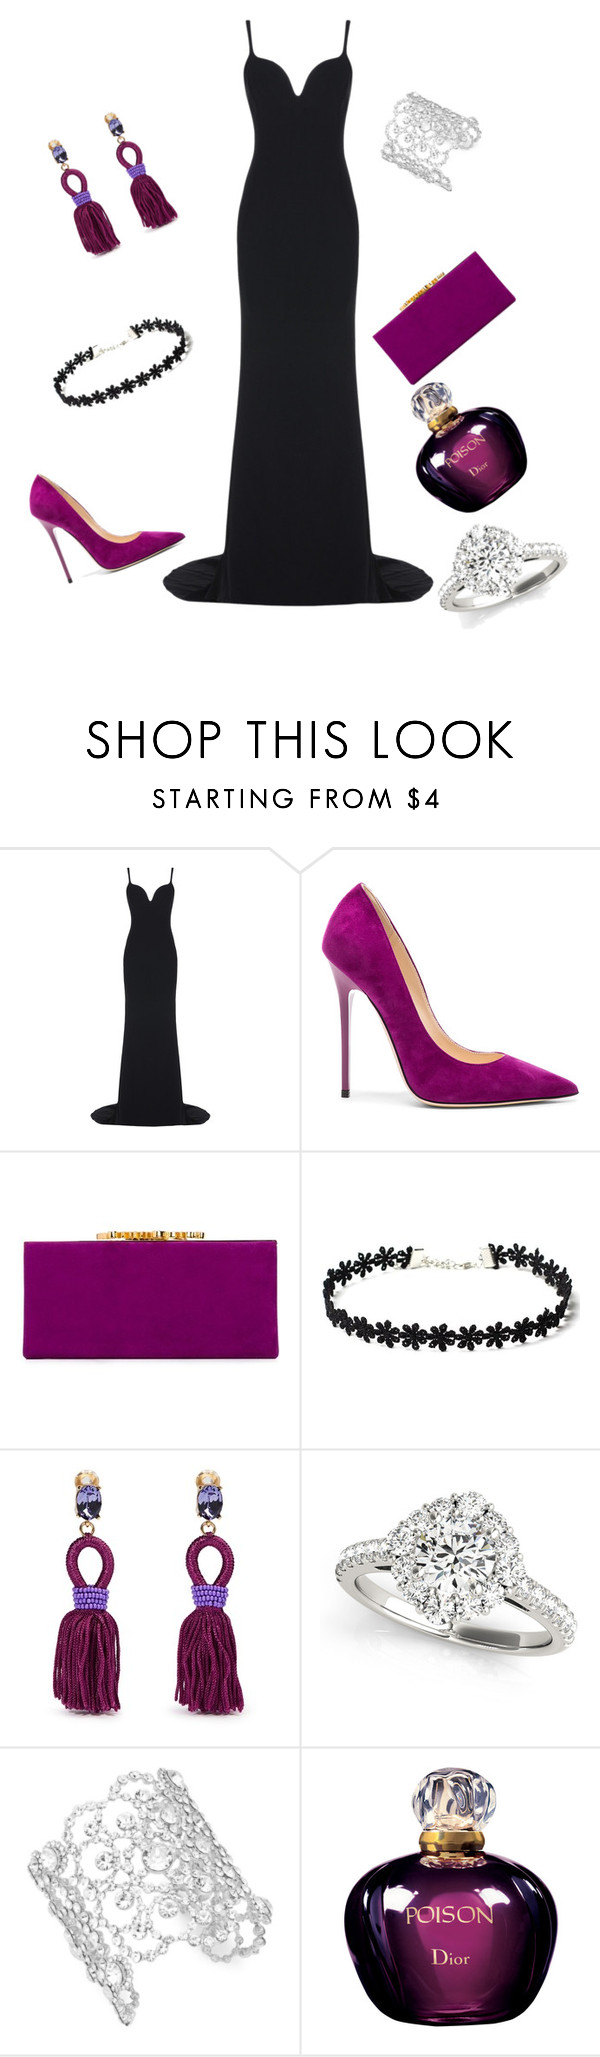 """""""Untitled #6"""" by zerina-2 ❤ liked on Polyvore featuring STELLA McCARTNEY, Jimmy Choo, Oscar de la Renta, Kate Spade and Christian Dior"""